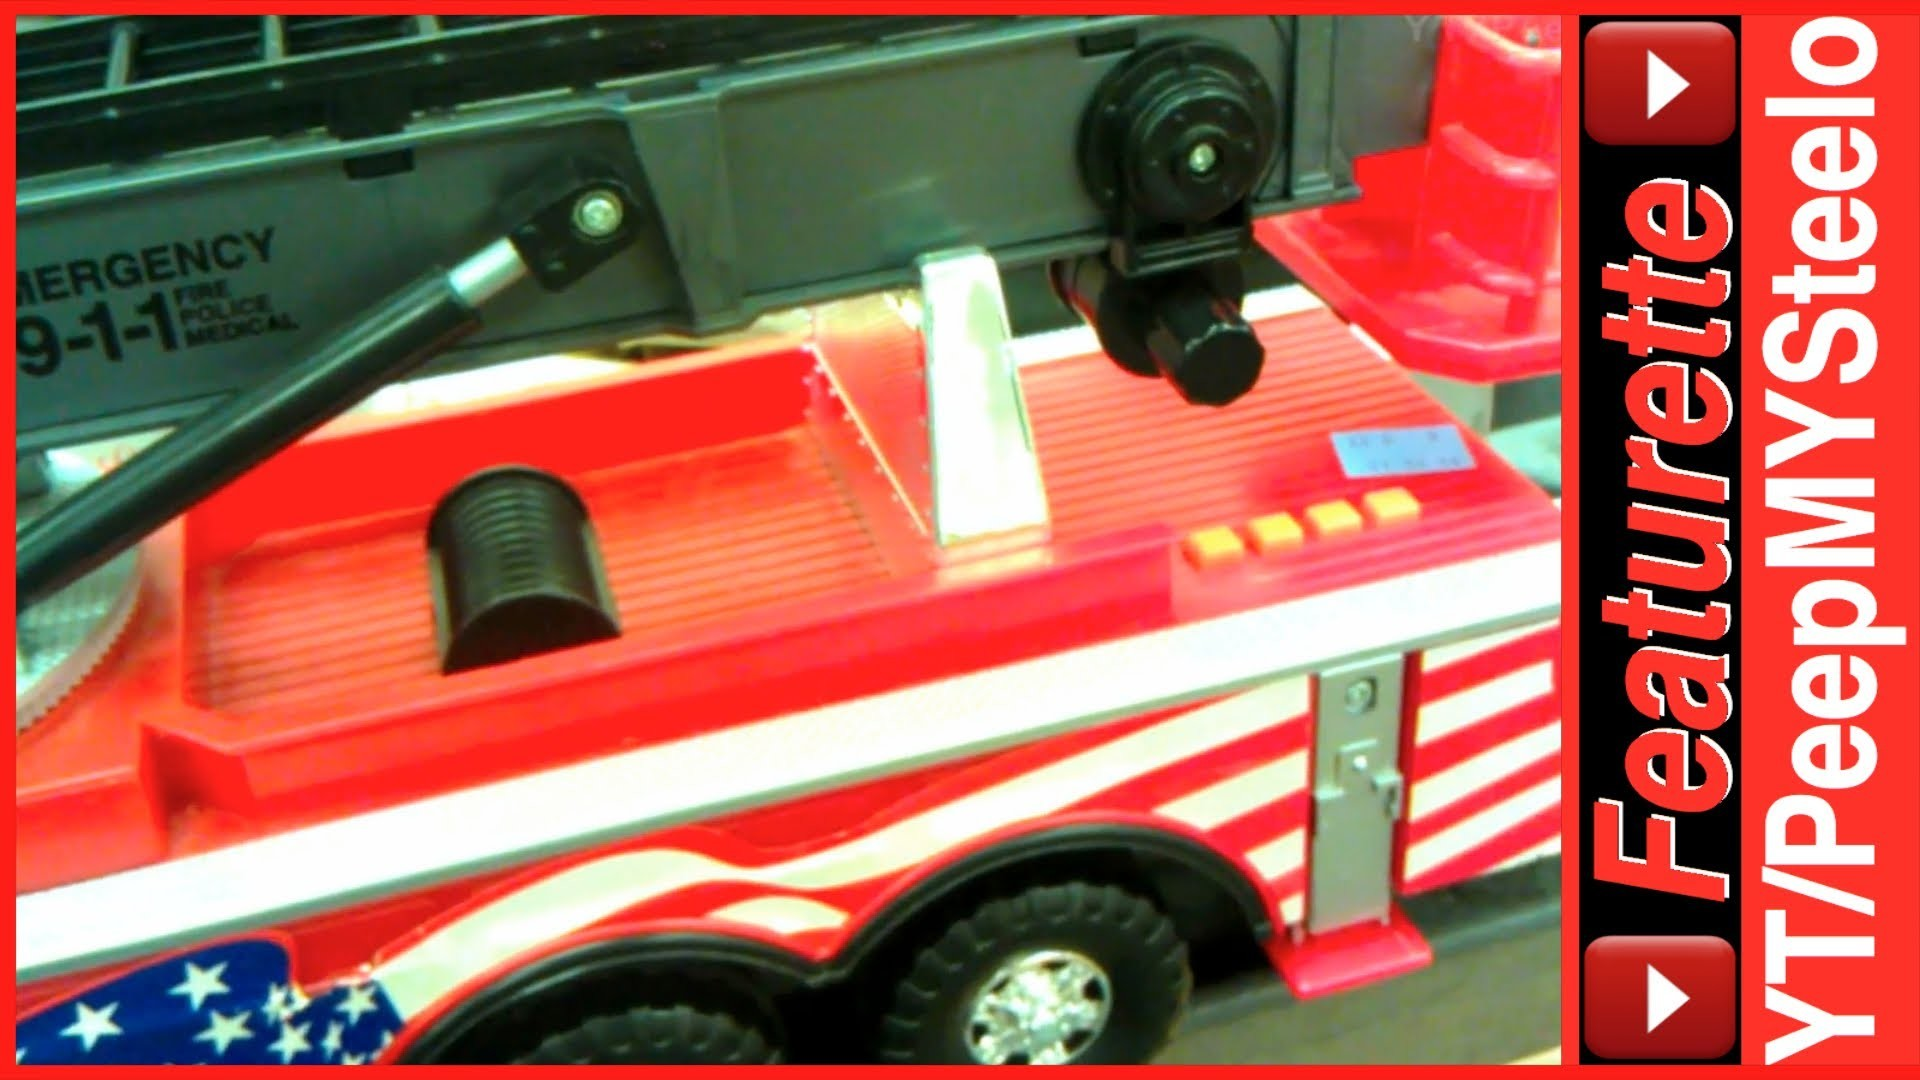 Best Toy Fire Trucks For Kids With Ladder of the Many Large Metal Red Engine Truck Toys For Sale